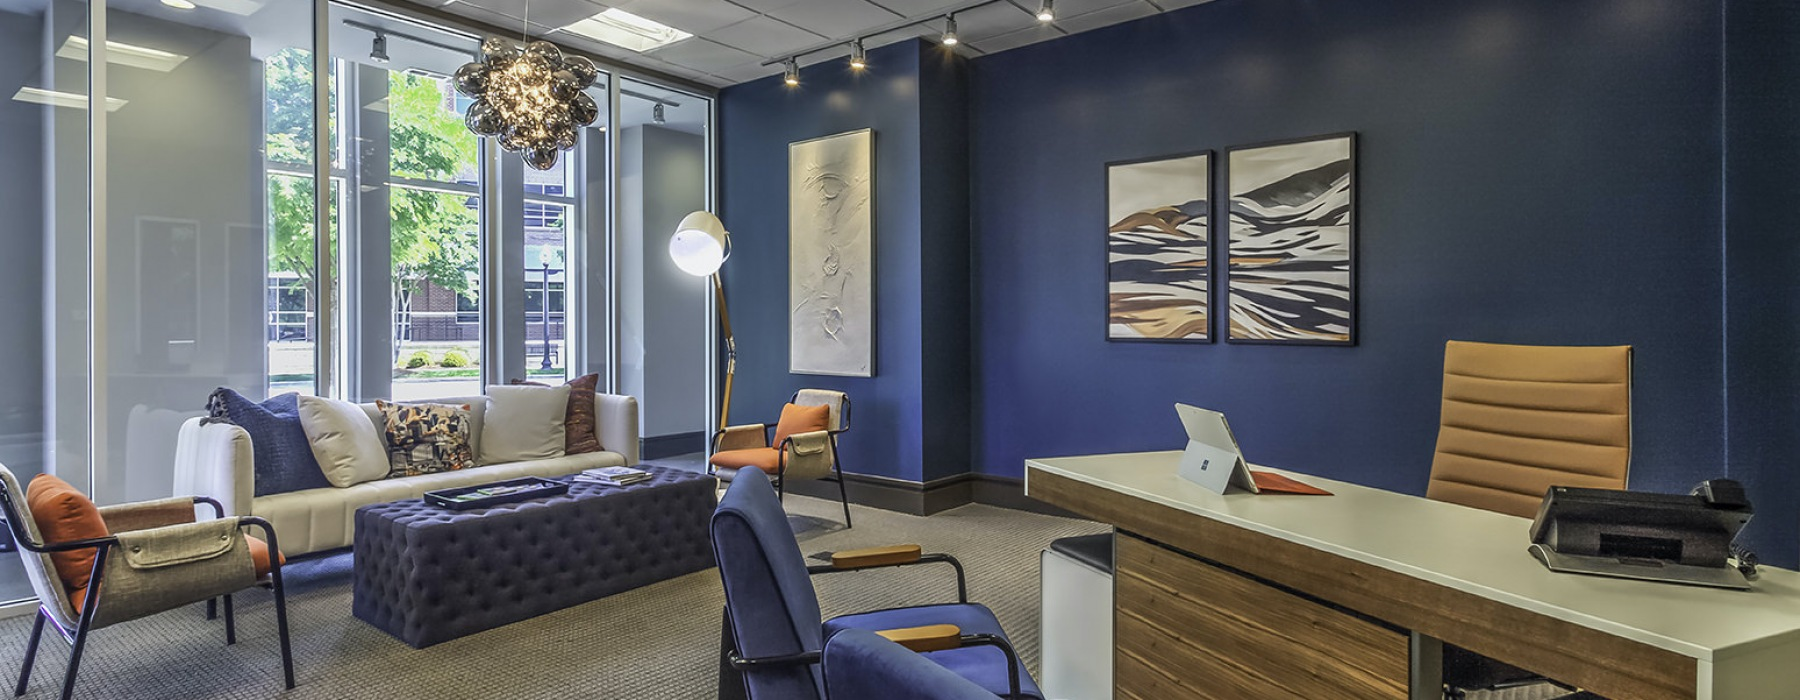 Leasing office with dark blue wall and comfortable modern furniture